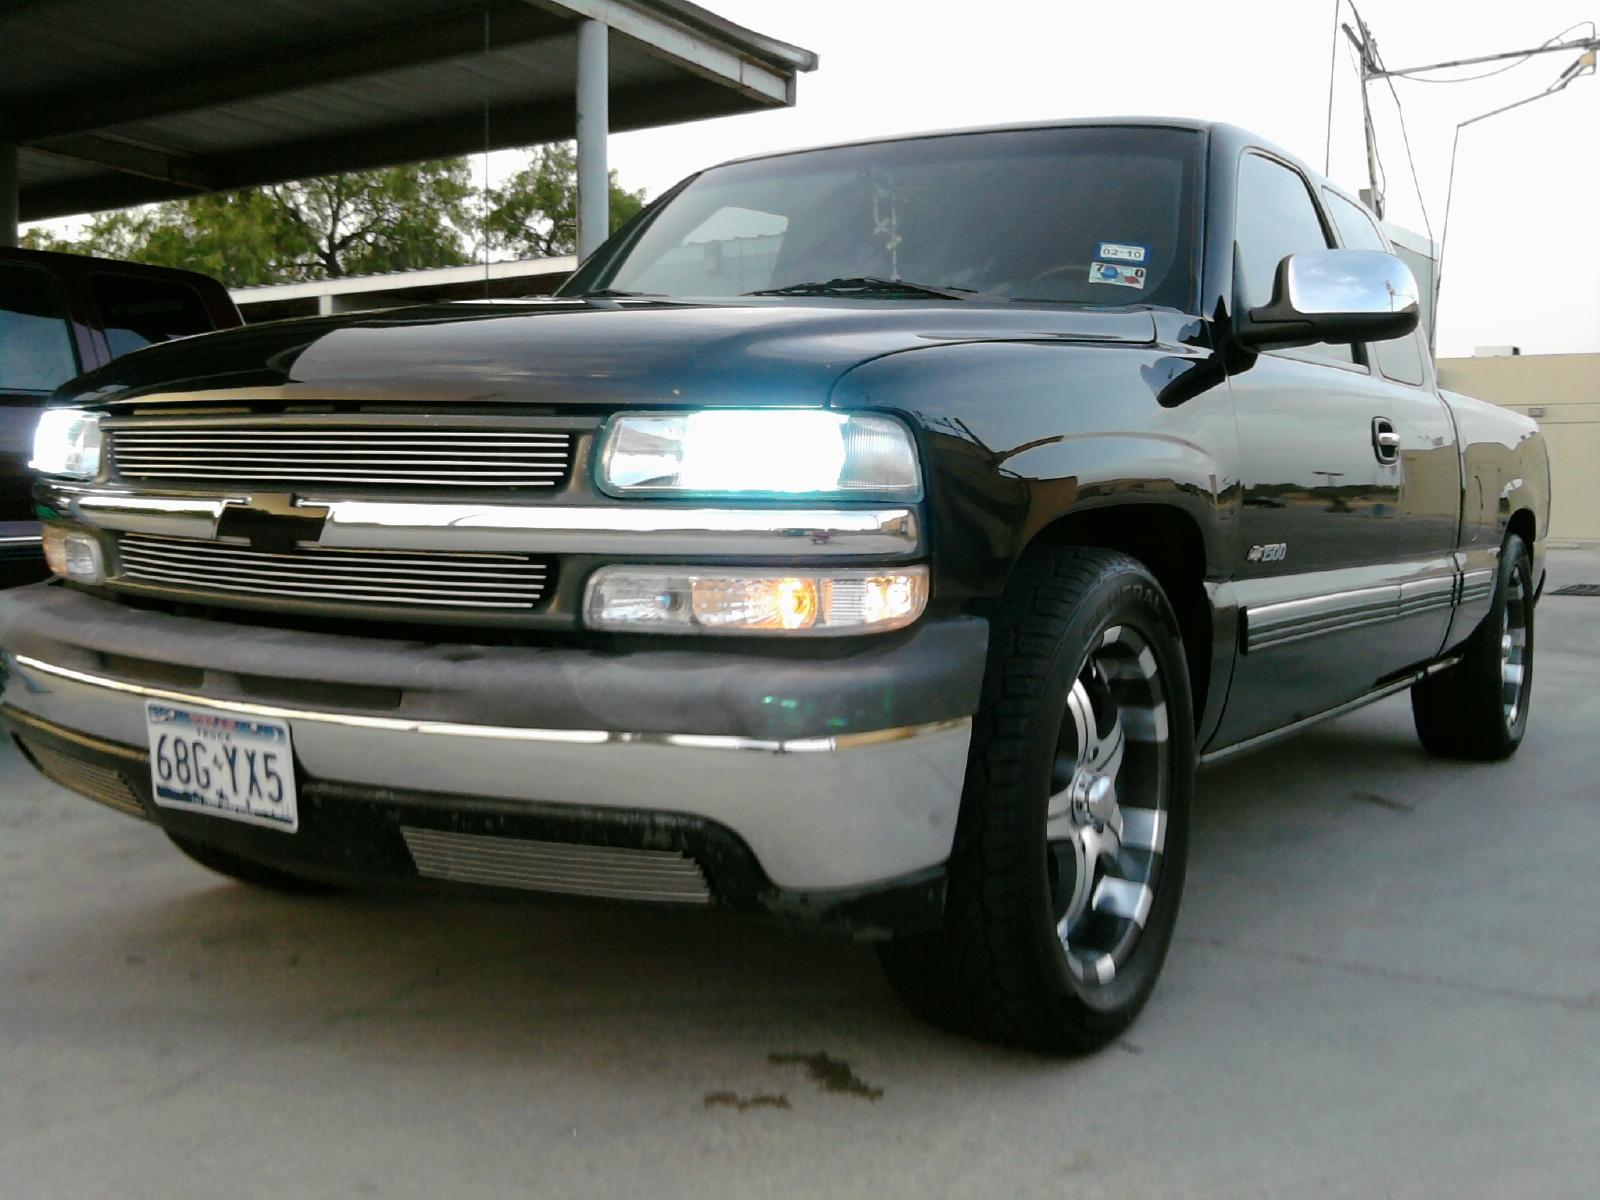 texastruckin01 2001 chevrolet silverado 1500 regular cab specs photos modification info at. Black Bedroom Furniture Sets. Home Design Ideas